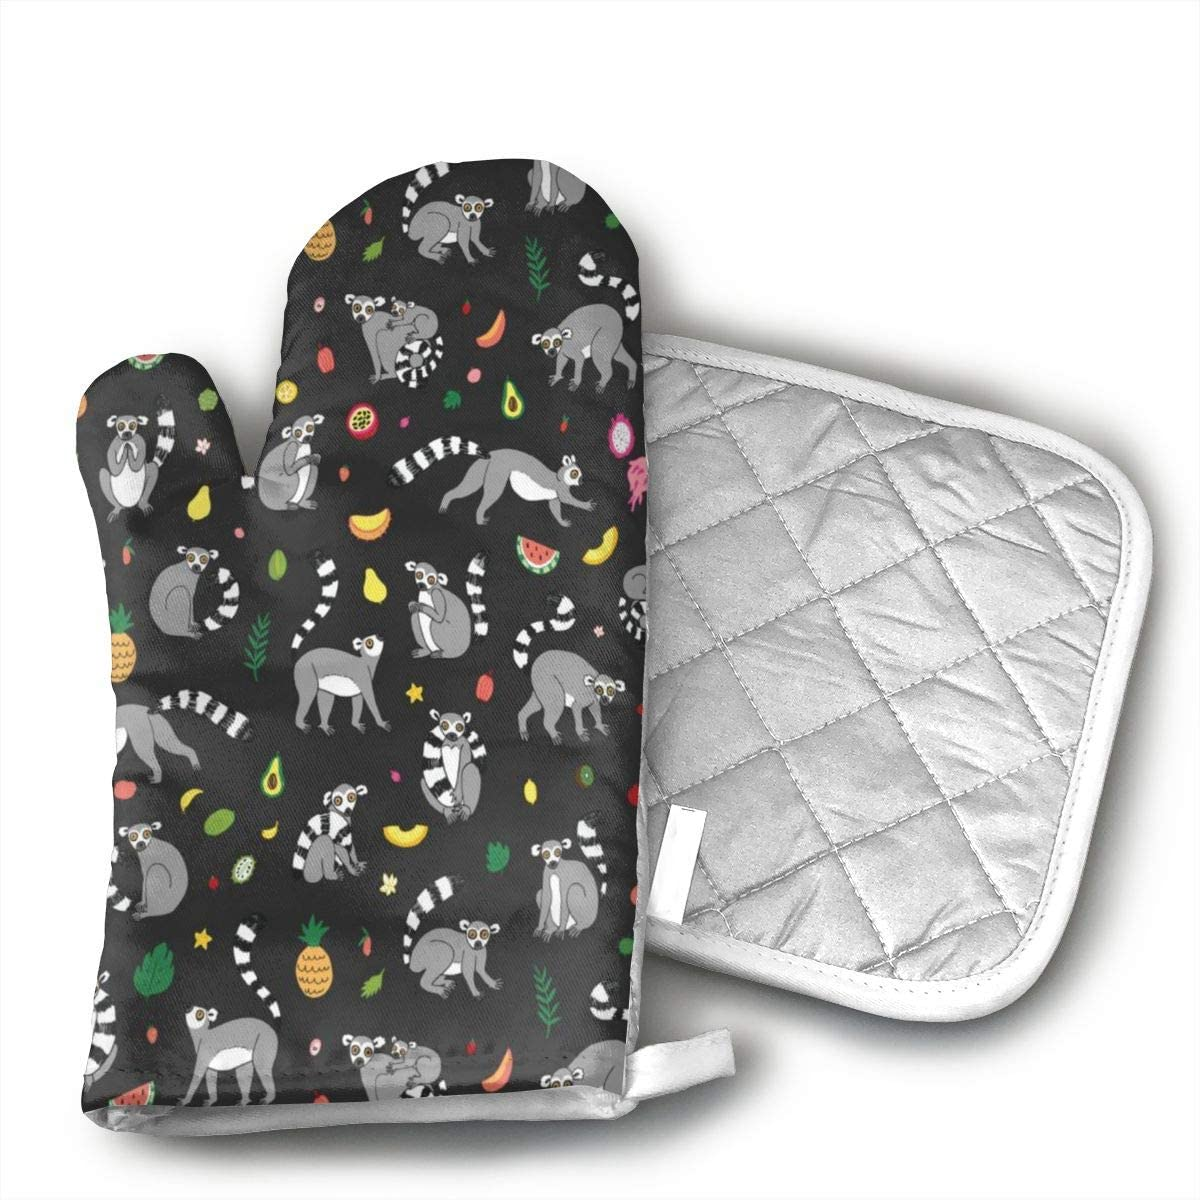 Lemur Animal with Tropical Fruits Oven Mitts and Potholders (2-Piece Sets) - Kitchen Set with Cotton Heat Resistant,Oven Gloves for BBQ Cooking Baking Grilling